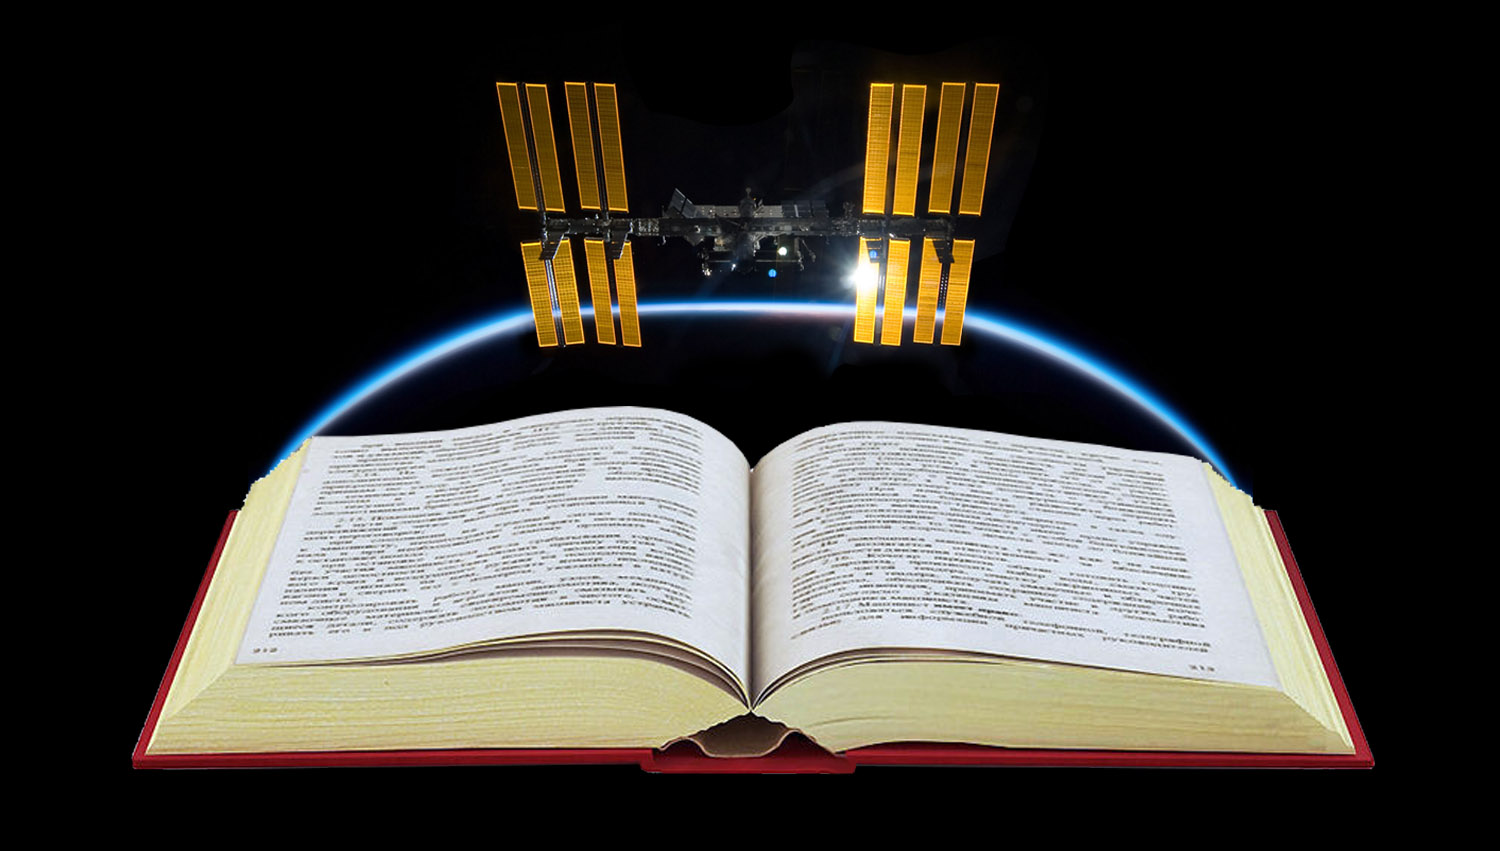 ISS in a book